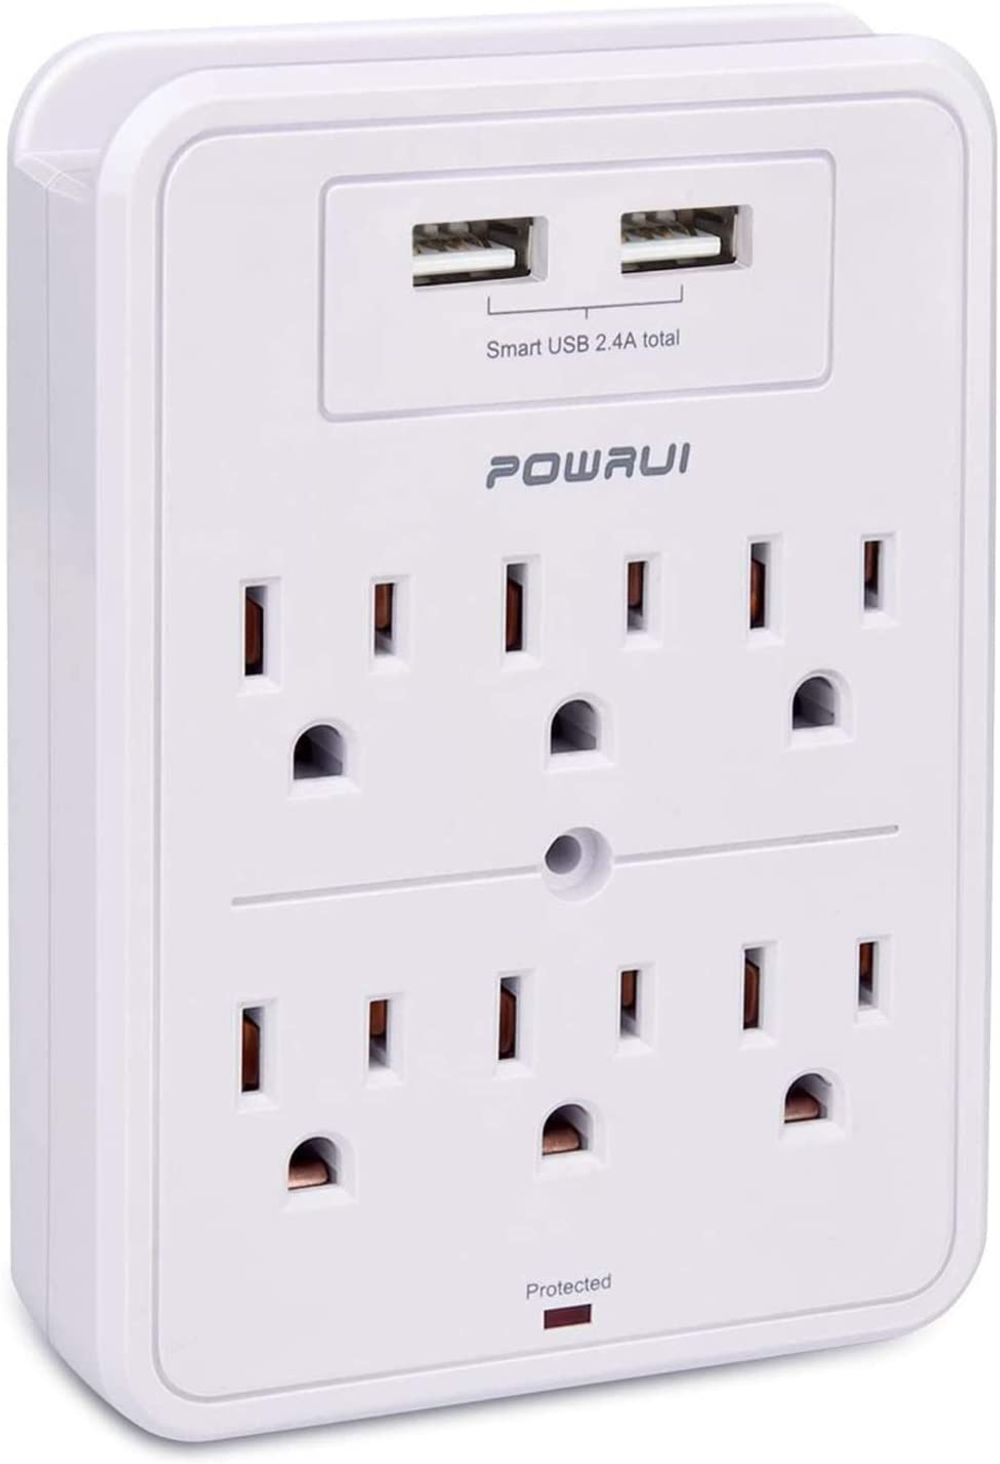 POWRUI Surge Protector, USB Wall Charger with 2 USB Charging Ports(Smart 2.4A Total), 6-Outlet Extender and Top Phone Holder for Your Cell Phone, White, ETL Listed